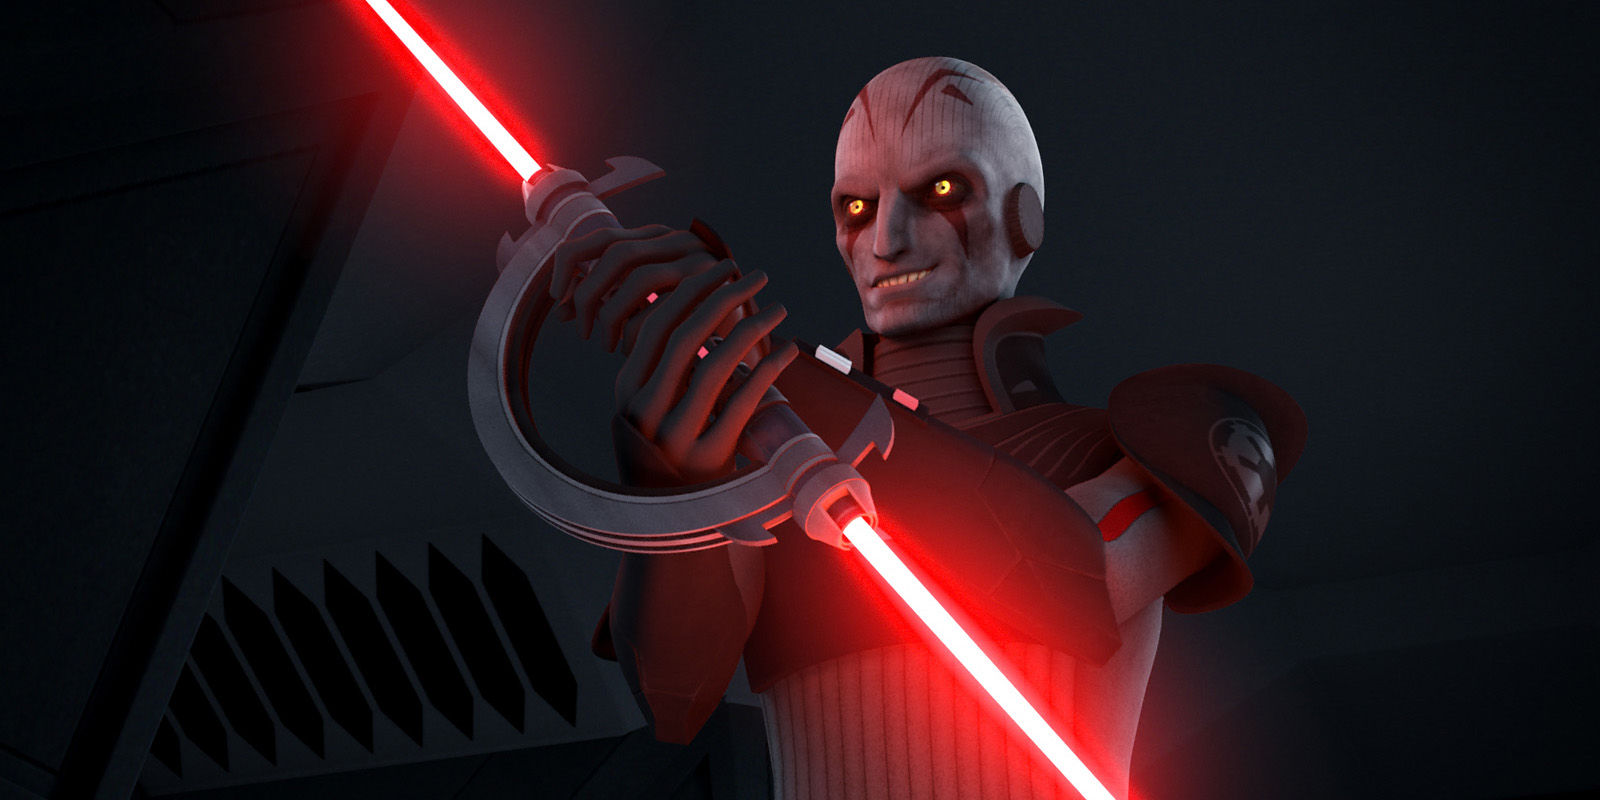 L'Inquisiteur de Star Wars Rebels